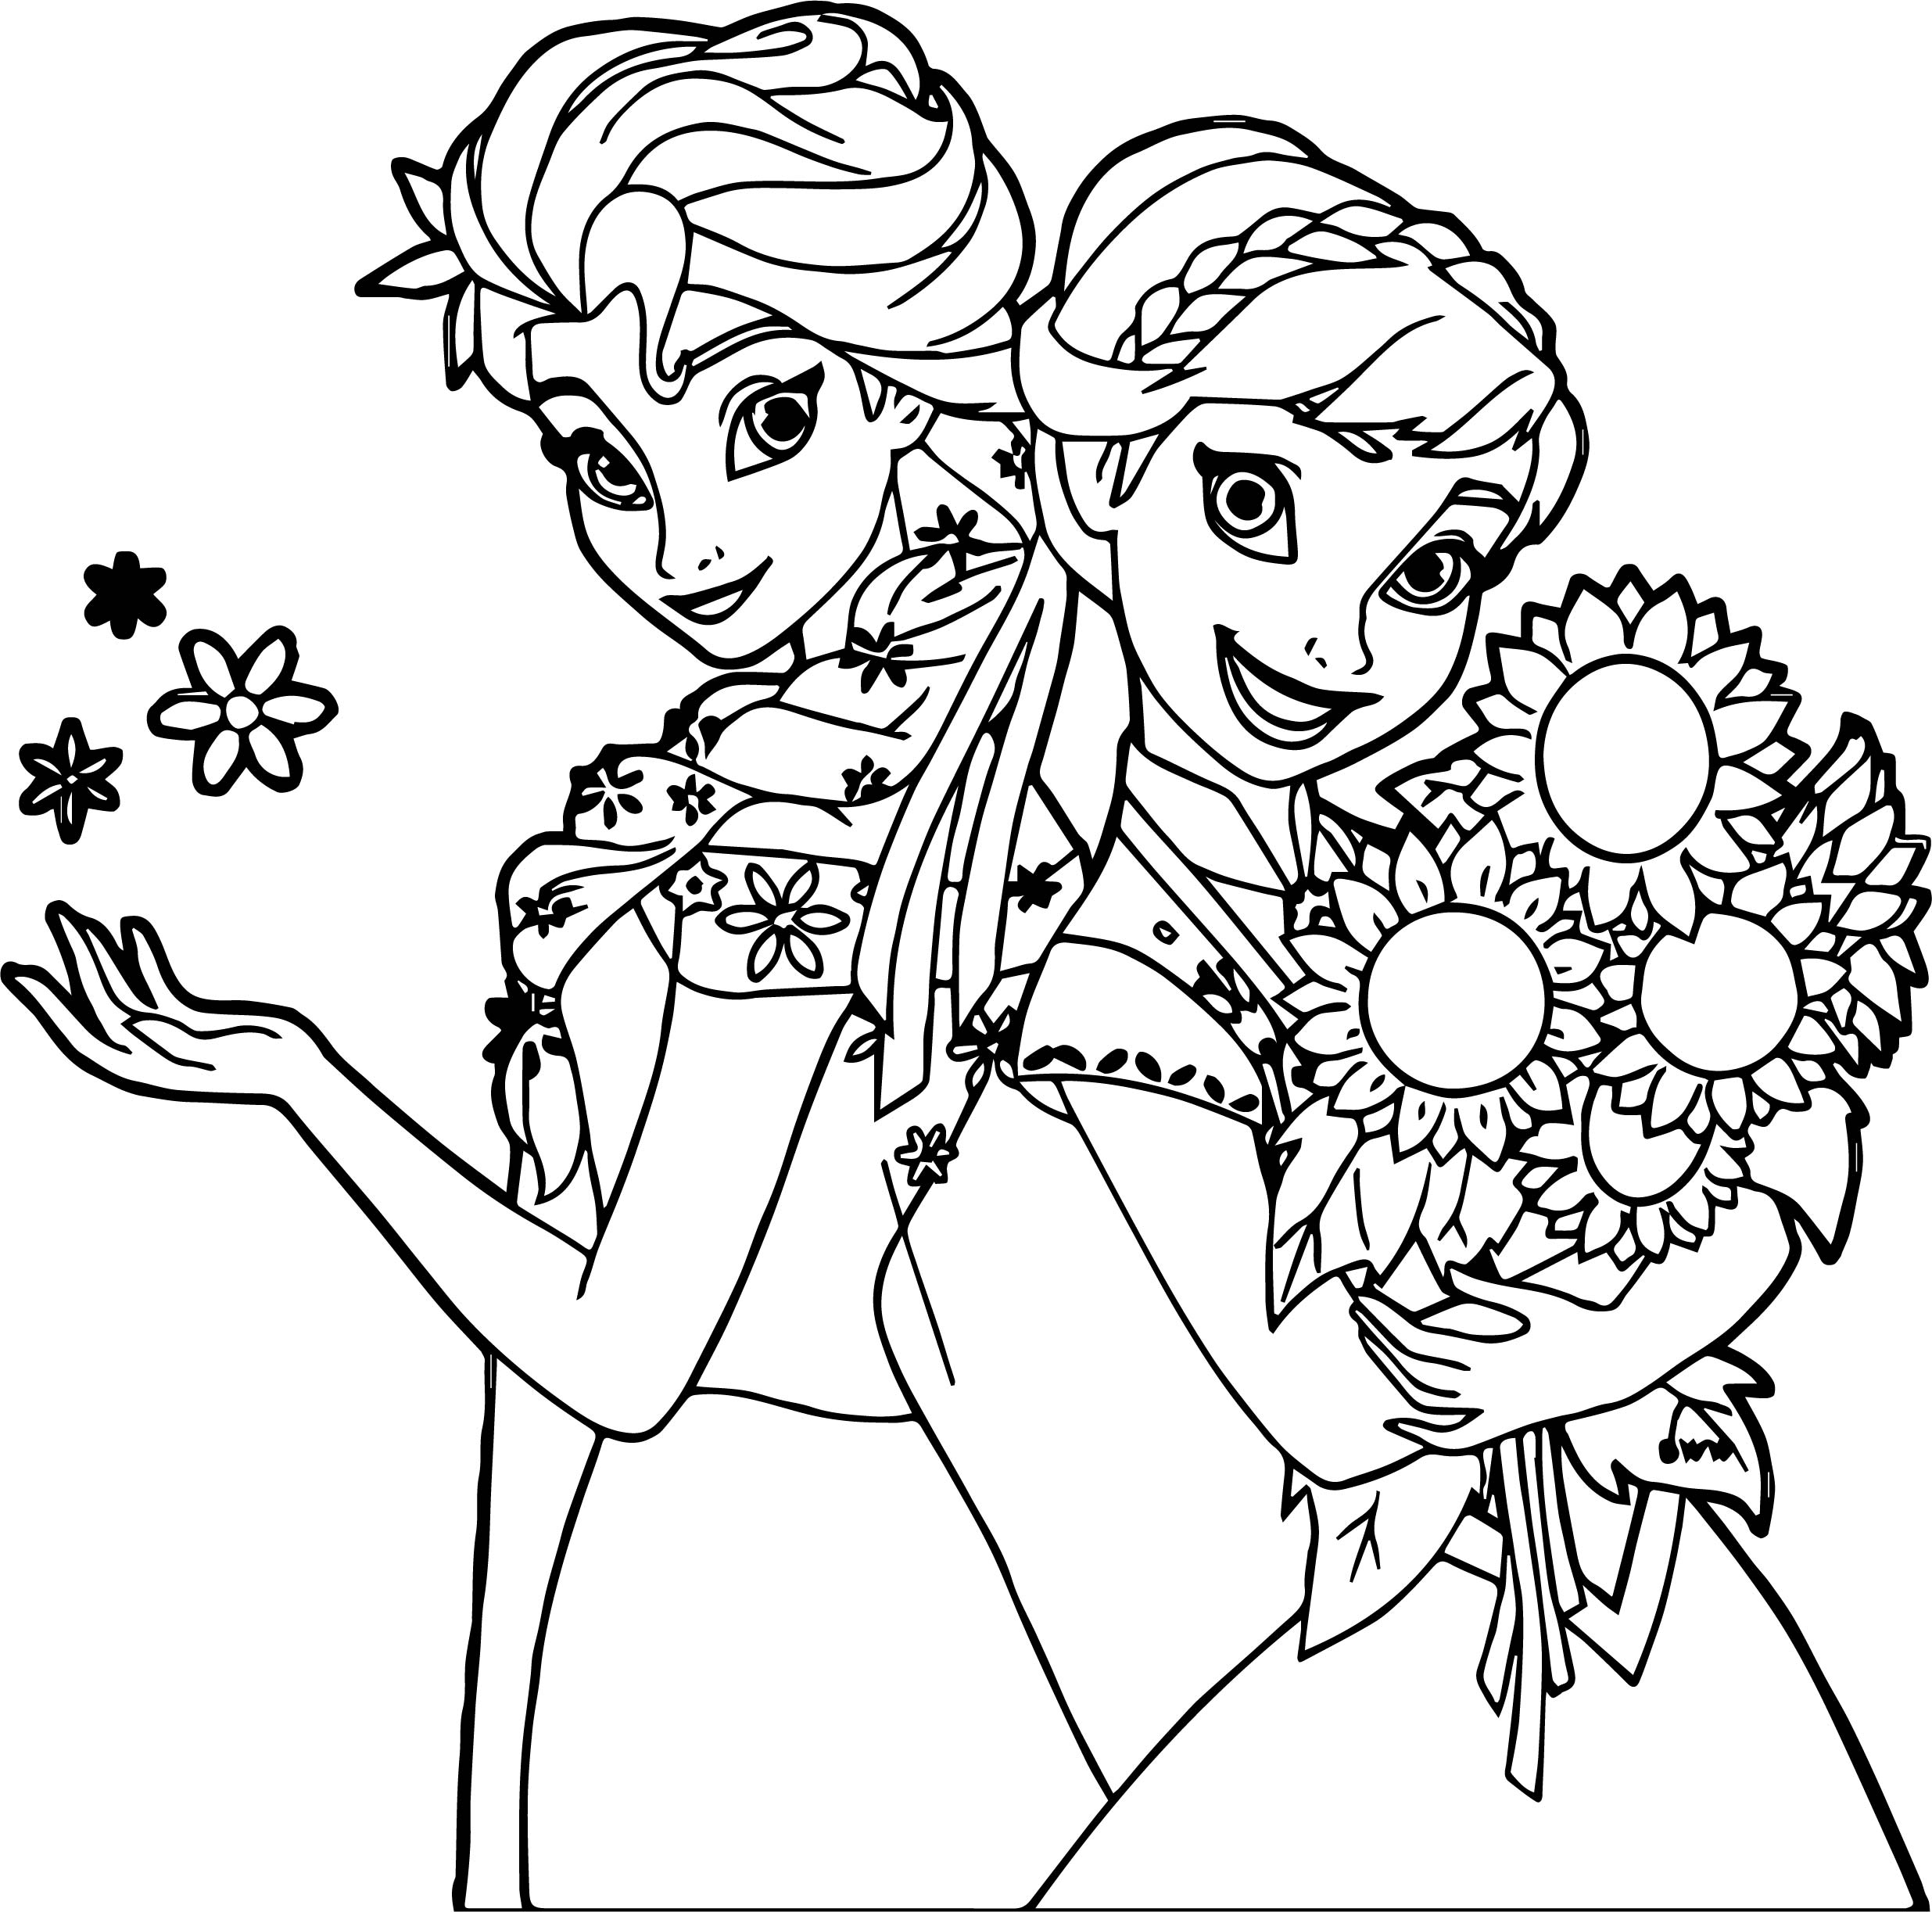 2471x2445 Frozen Fever And Anna Snow And Flower Coloring Page Wecoloringpage